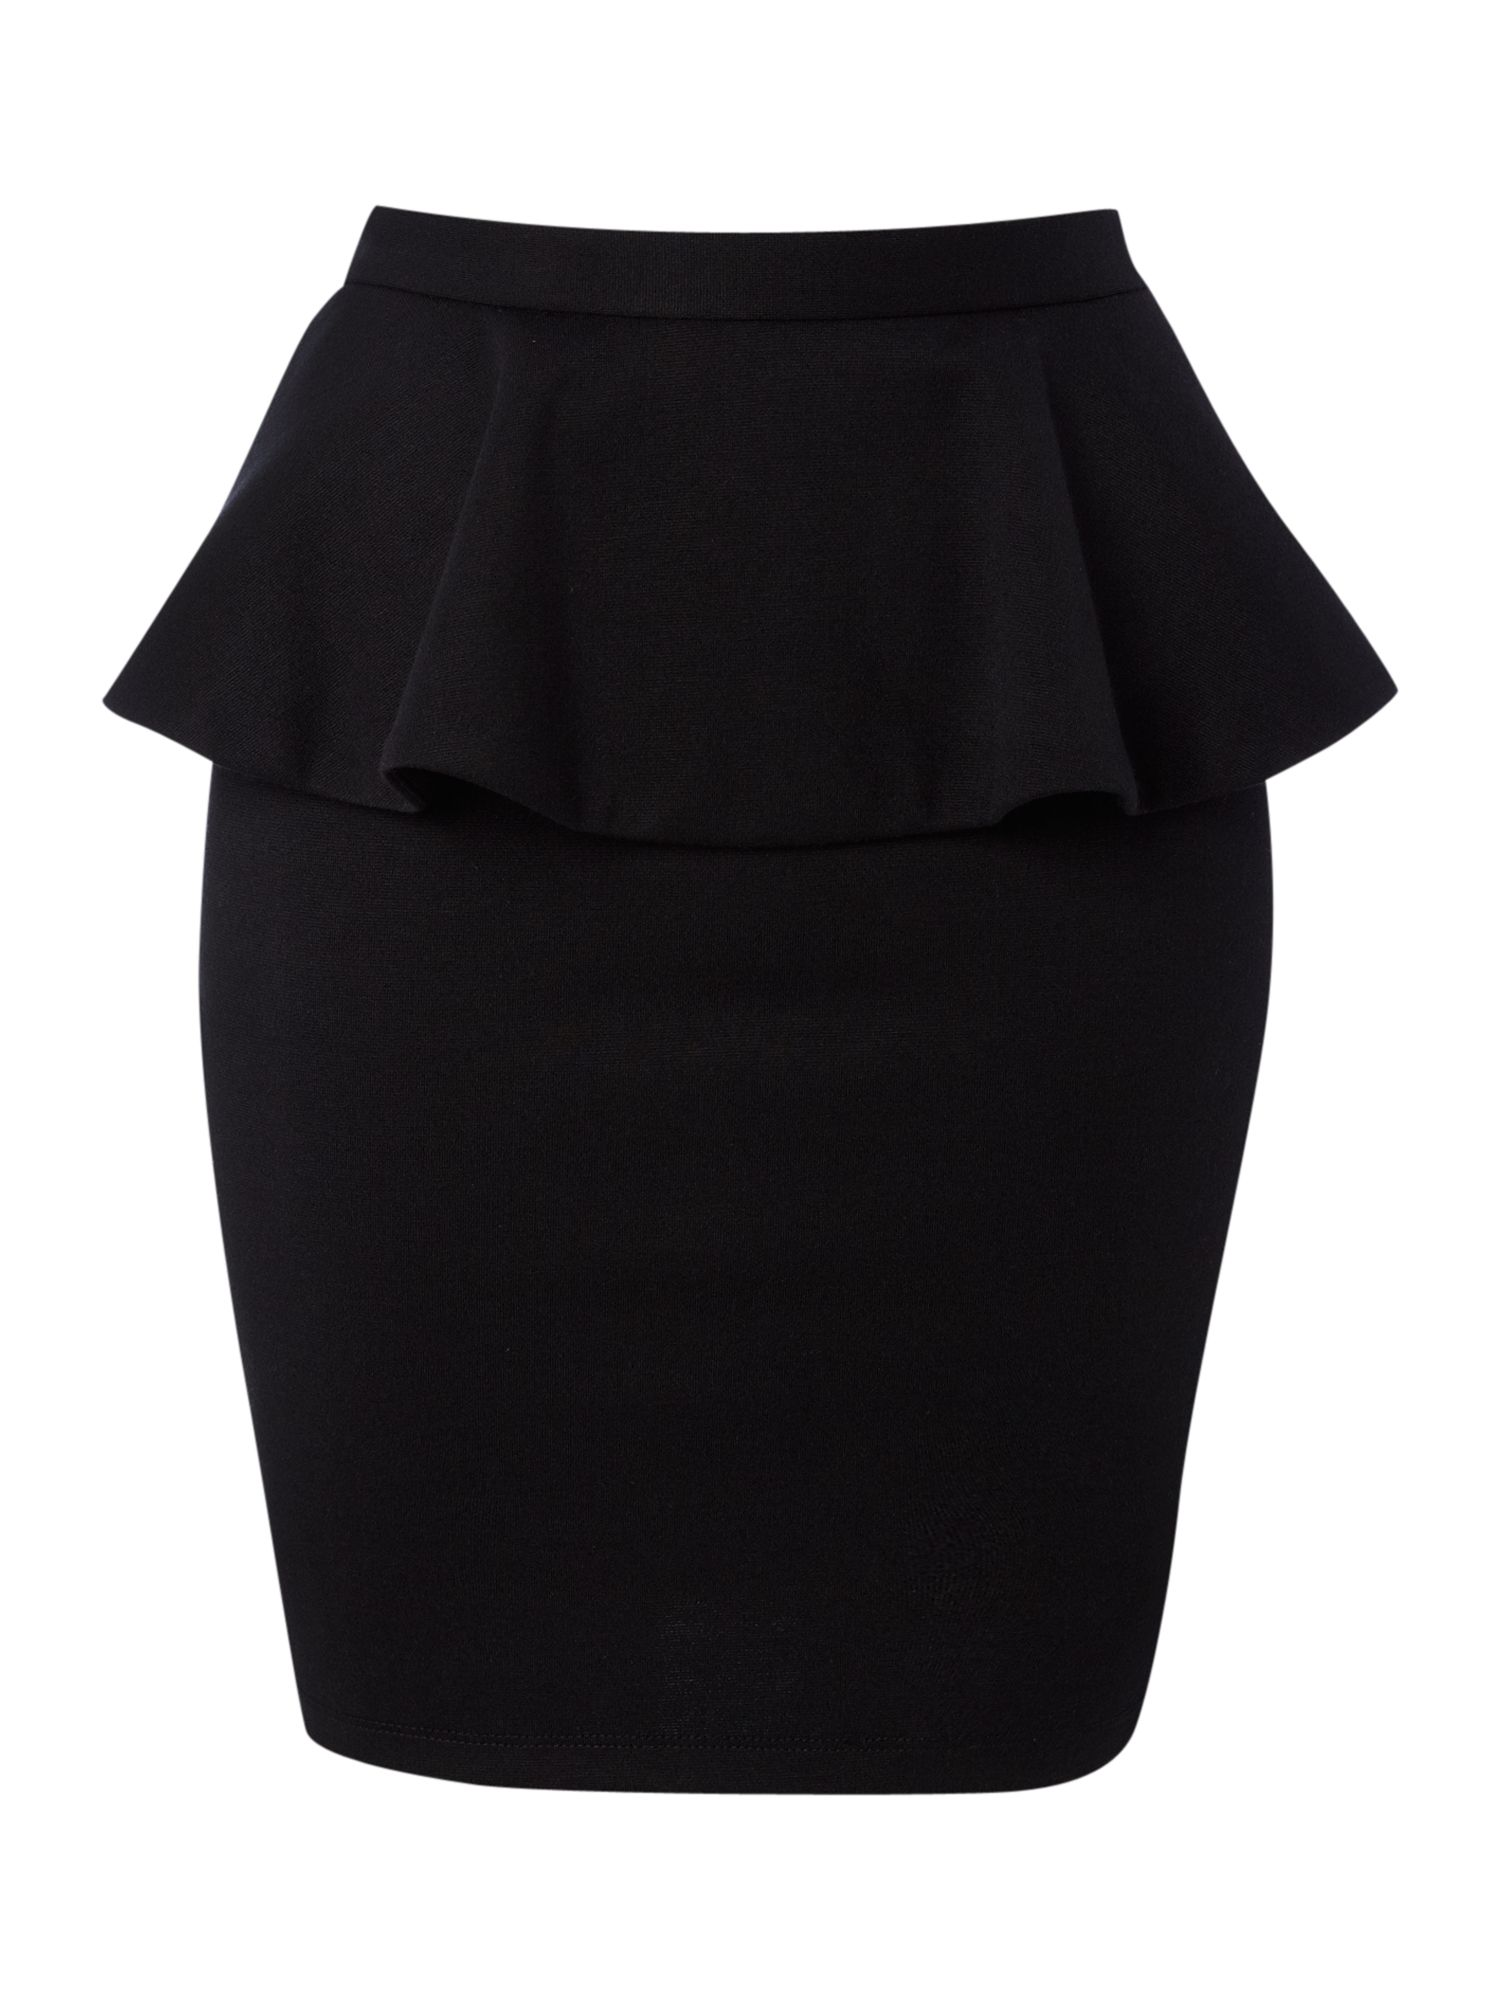 Bodycon peplum skirt